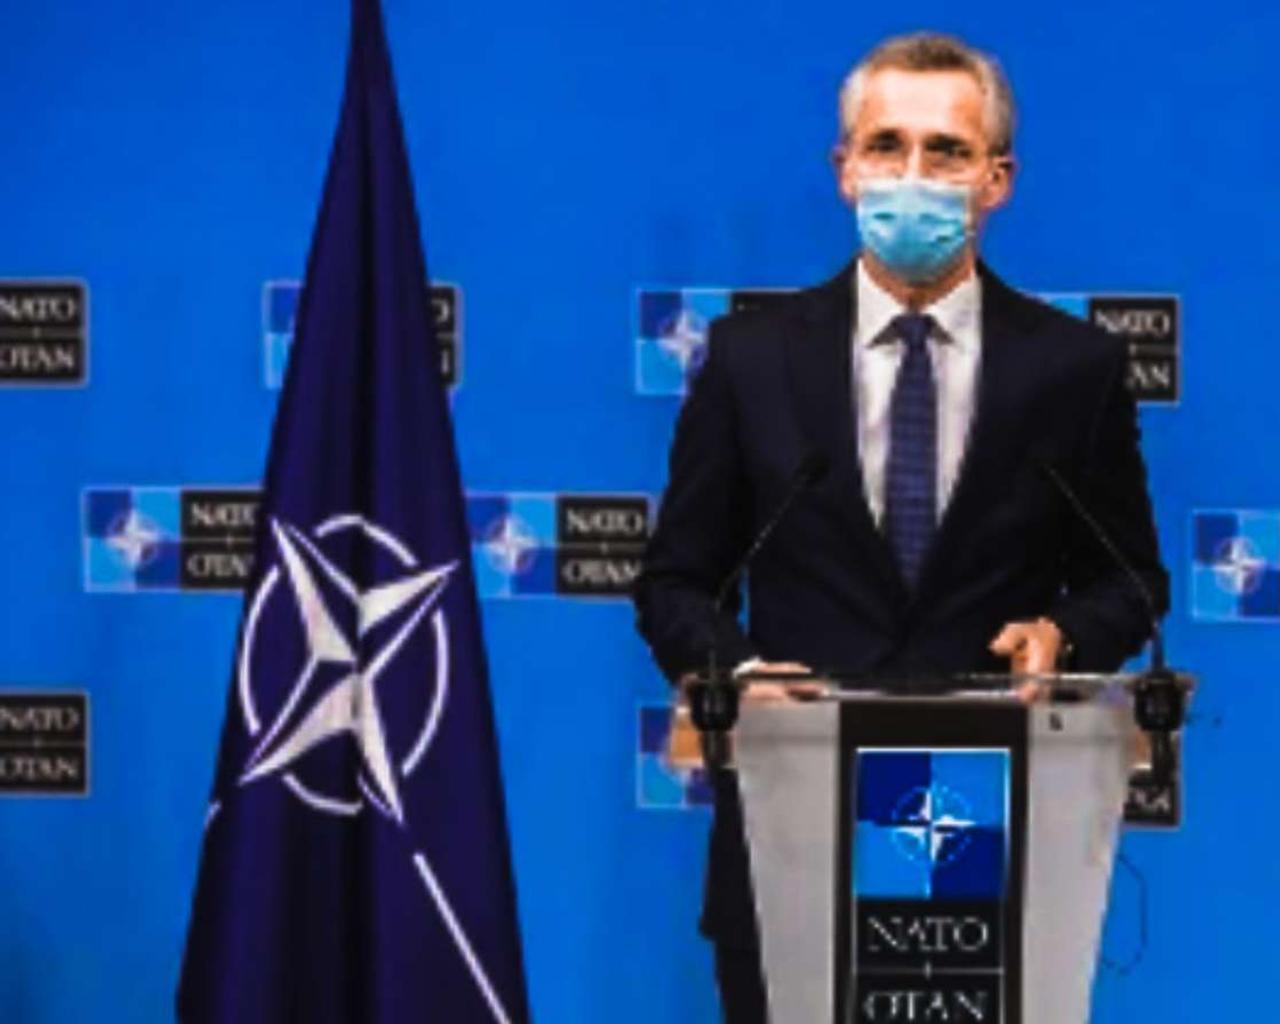 Vladimir Putin is responsible for all actions taken by the Russian state, the NATO secretary-general stressed.